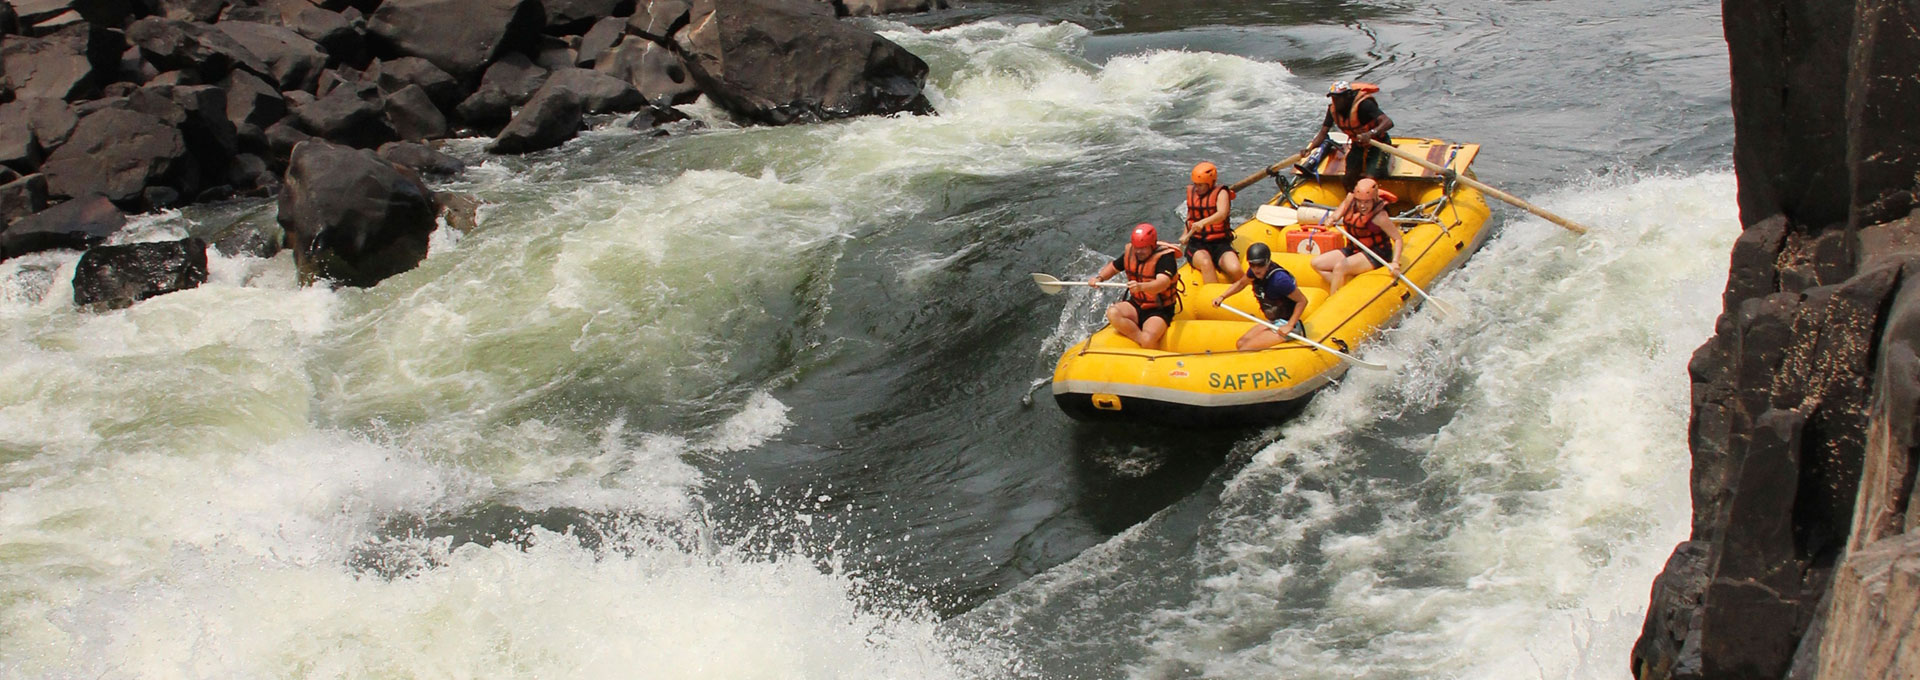 White Water Rafting Safpar